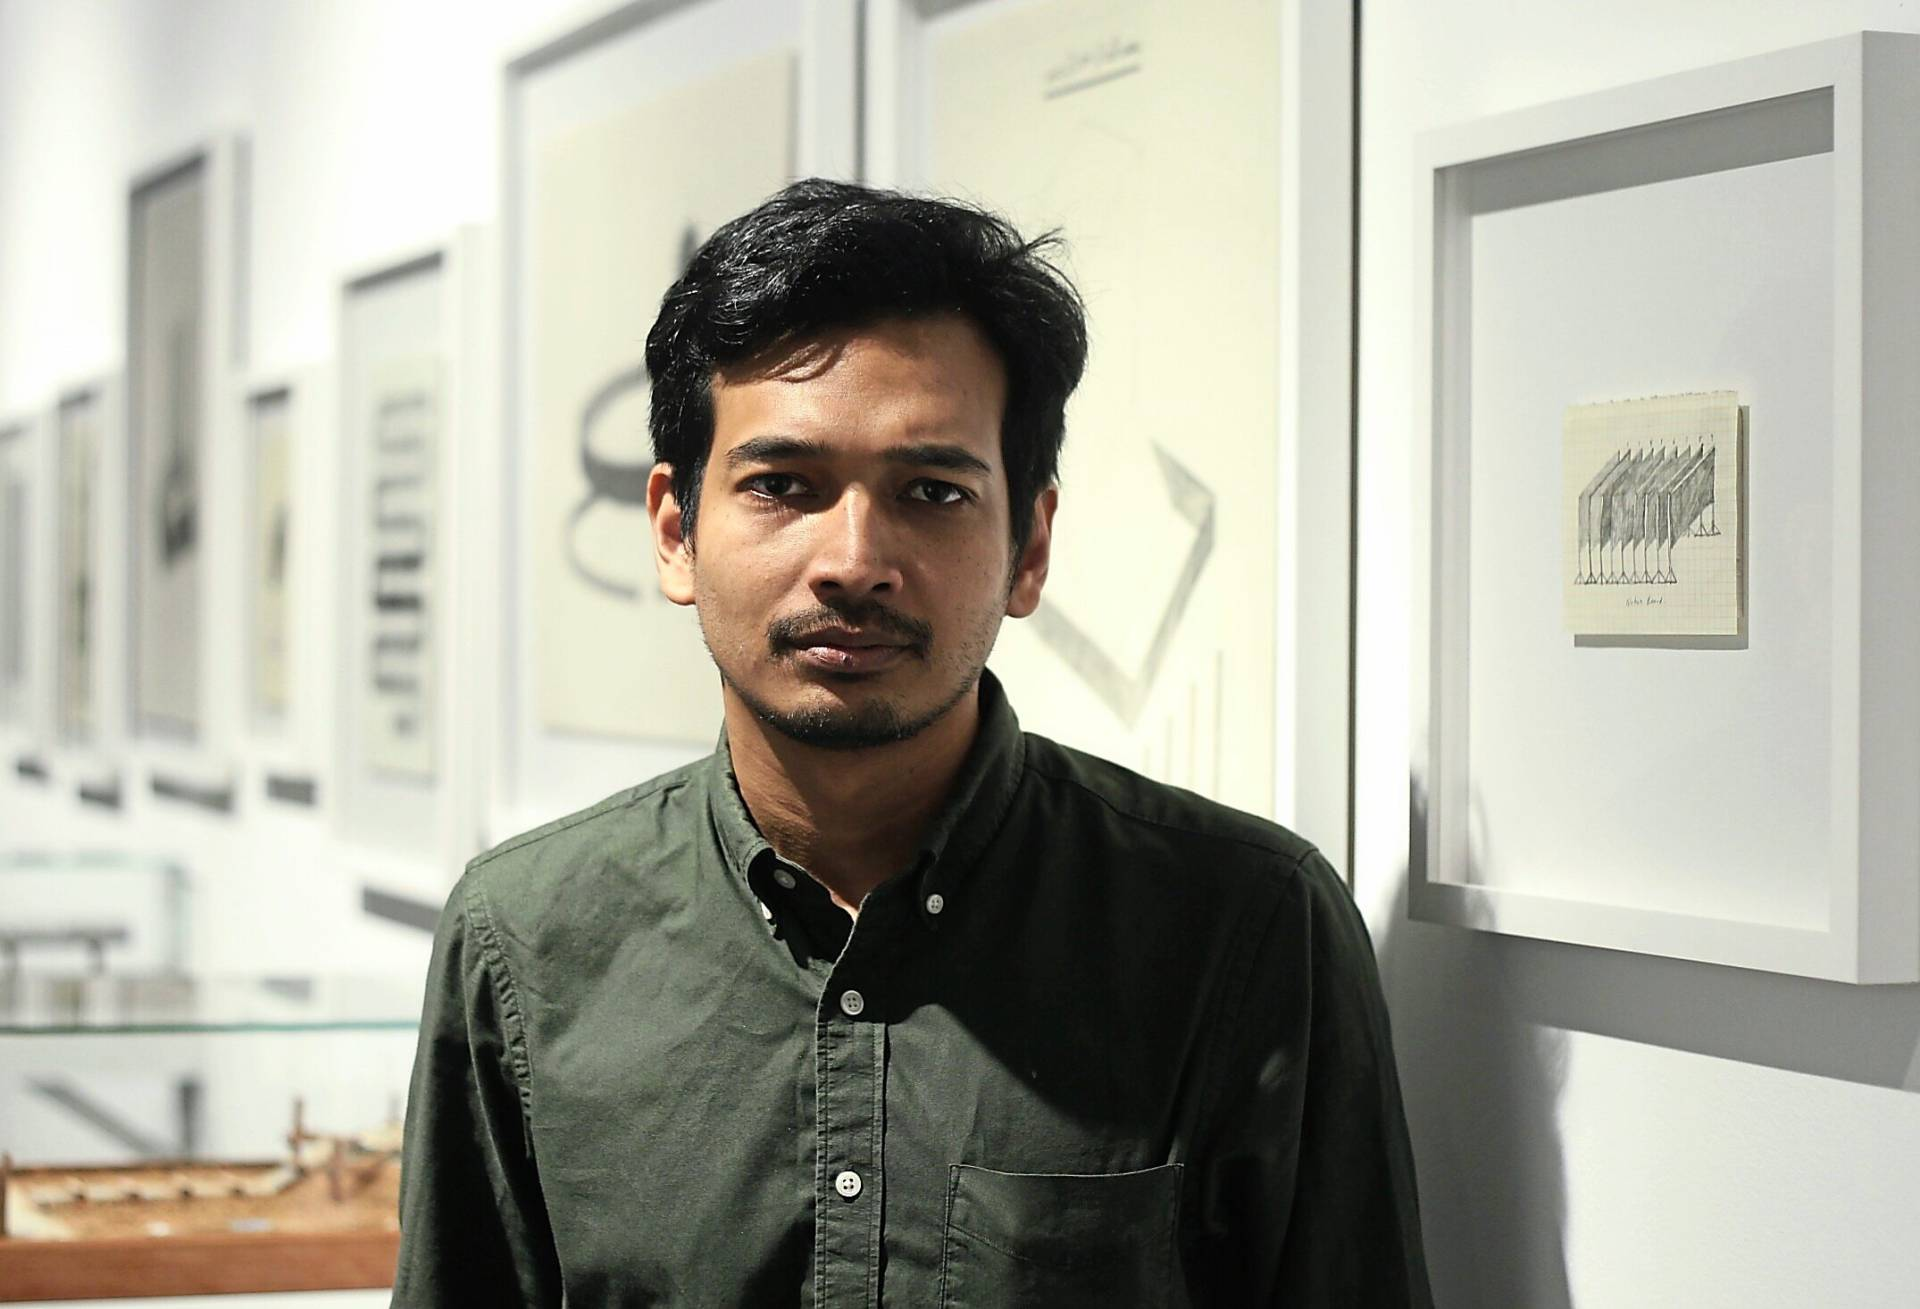 'Identity and culture are always evolving, you need to live it to keep it alive,' says Izat. Photo: The Star/Azman Ghani